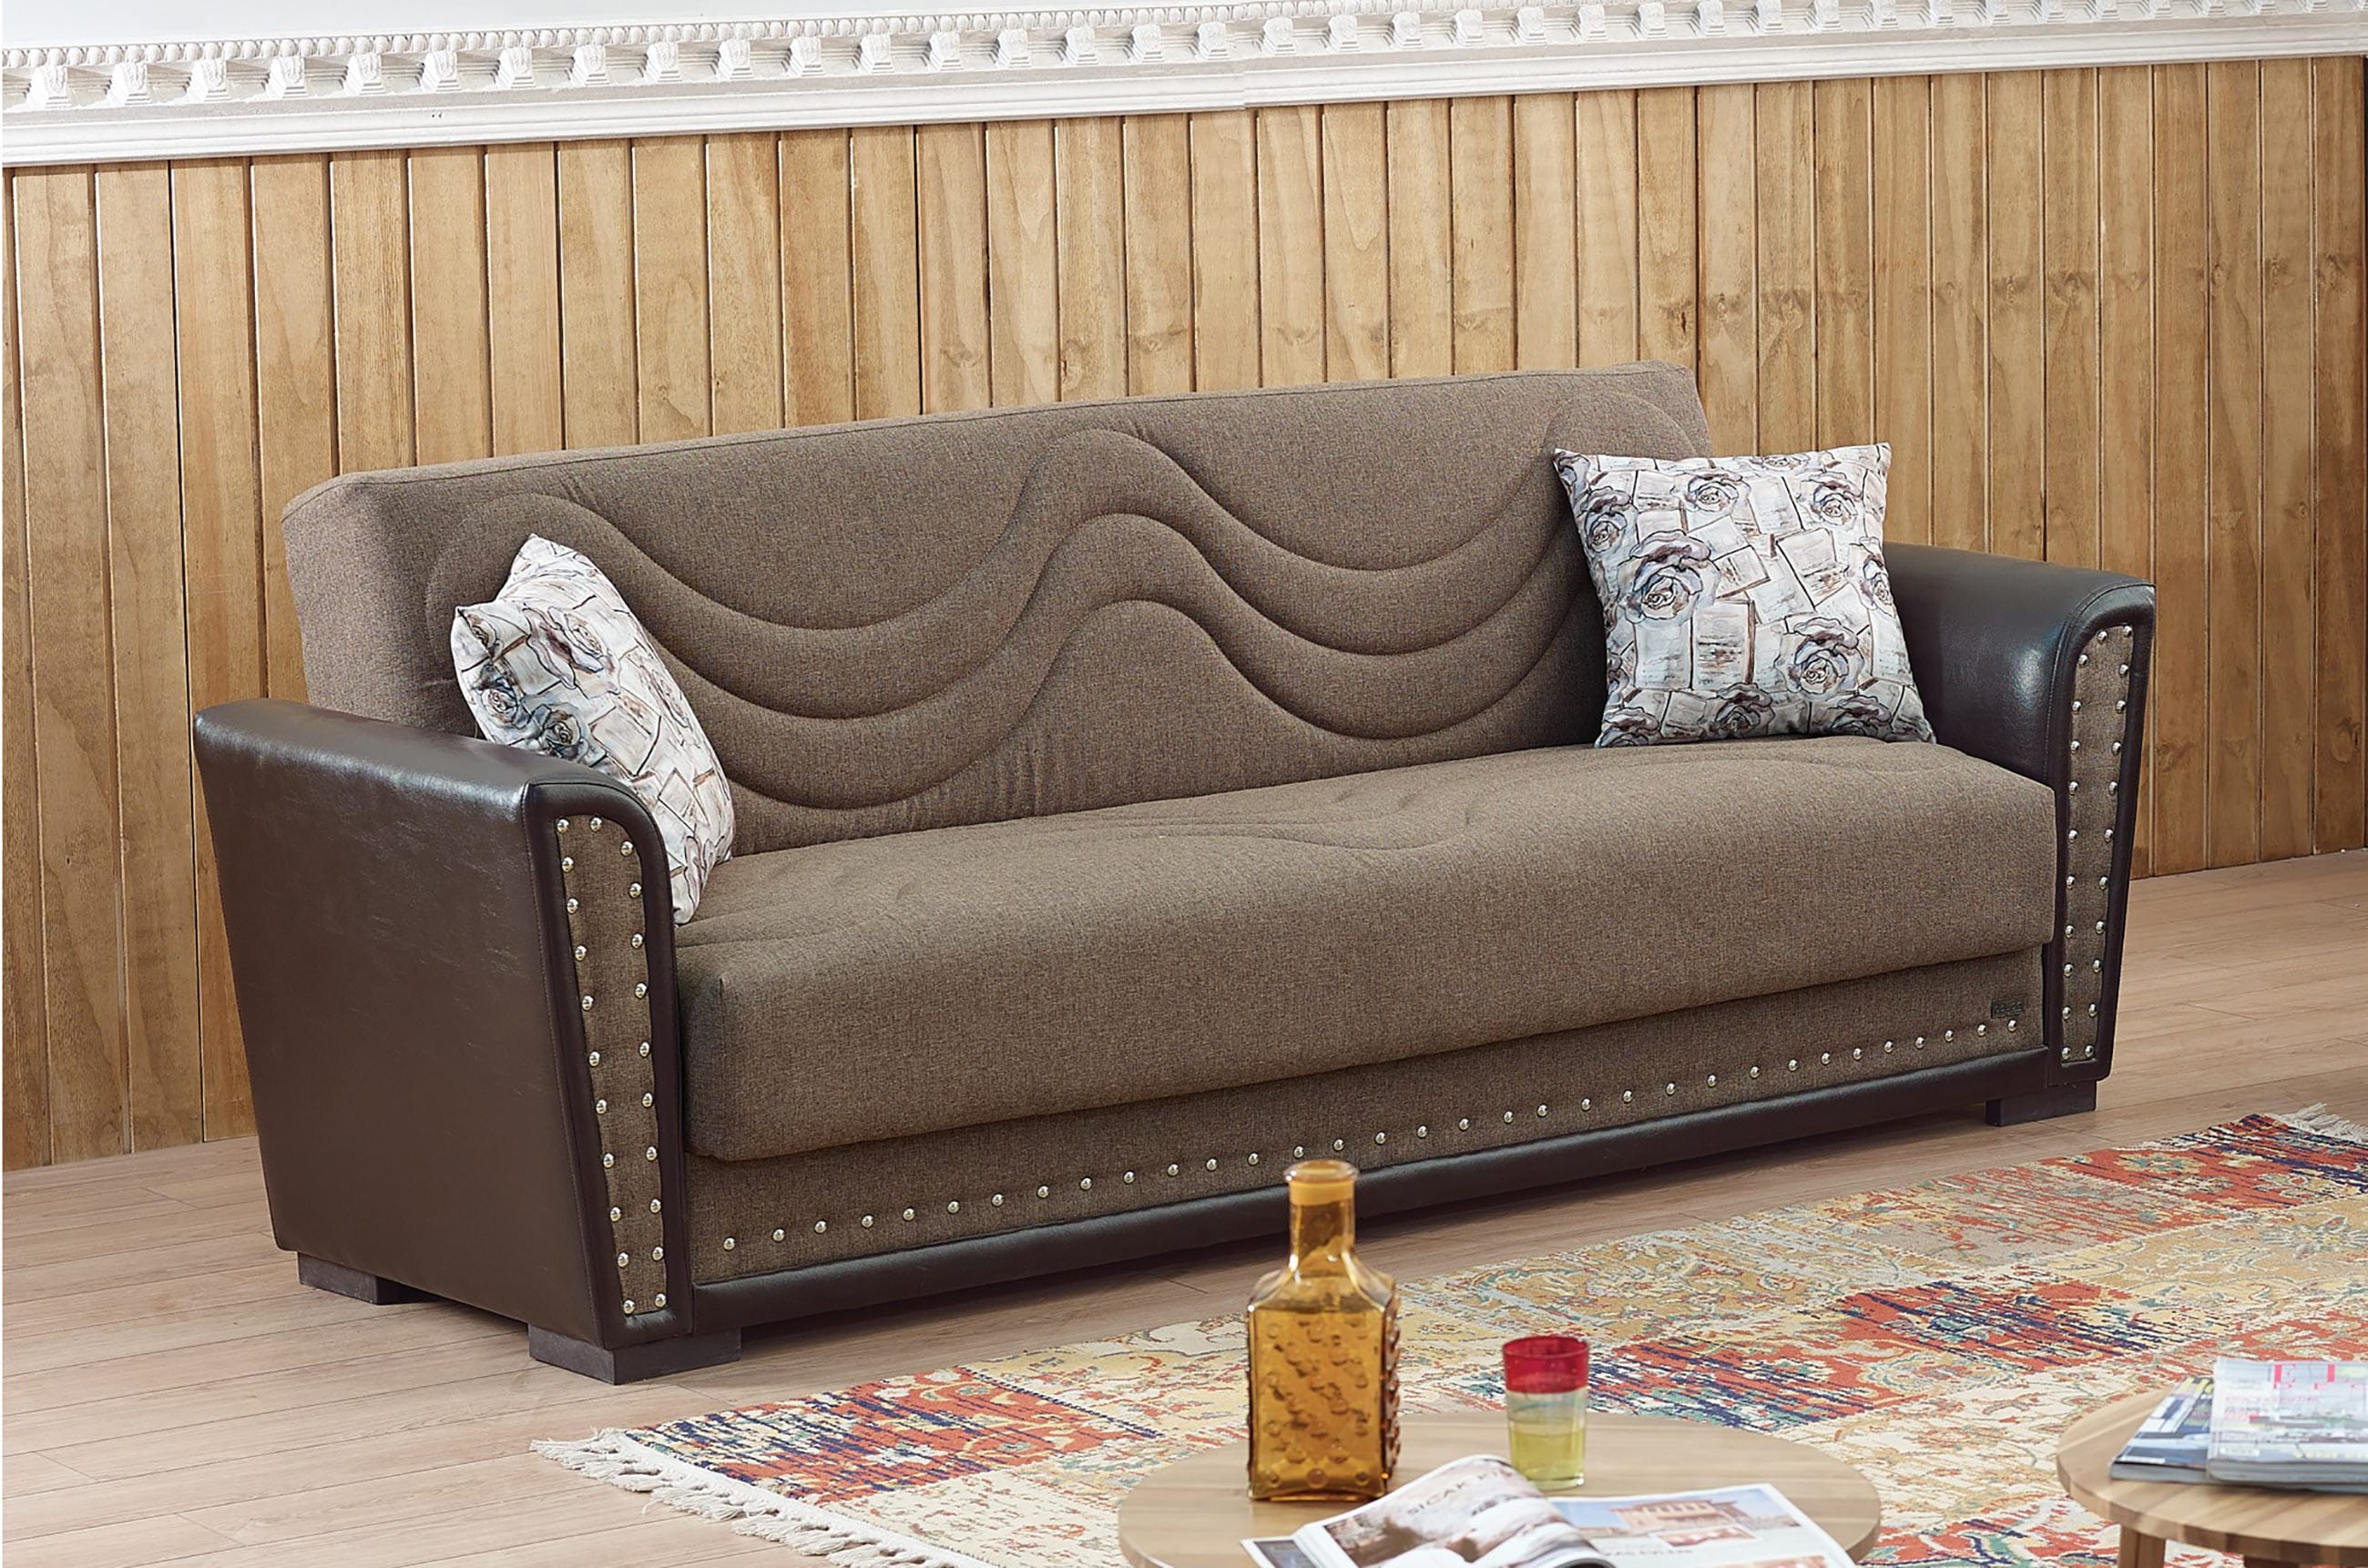 empire furniture sofa leather covers india toronto brown fabric bed by usa